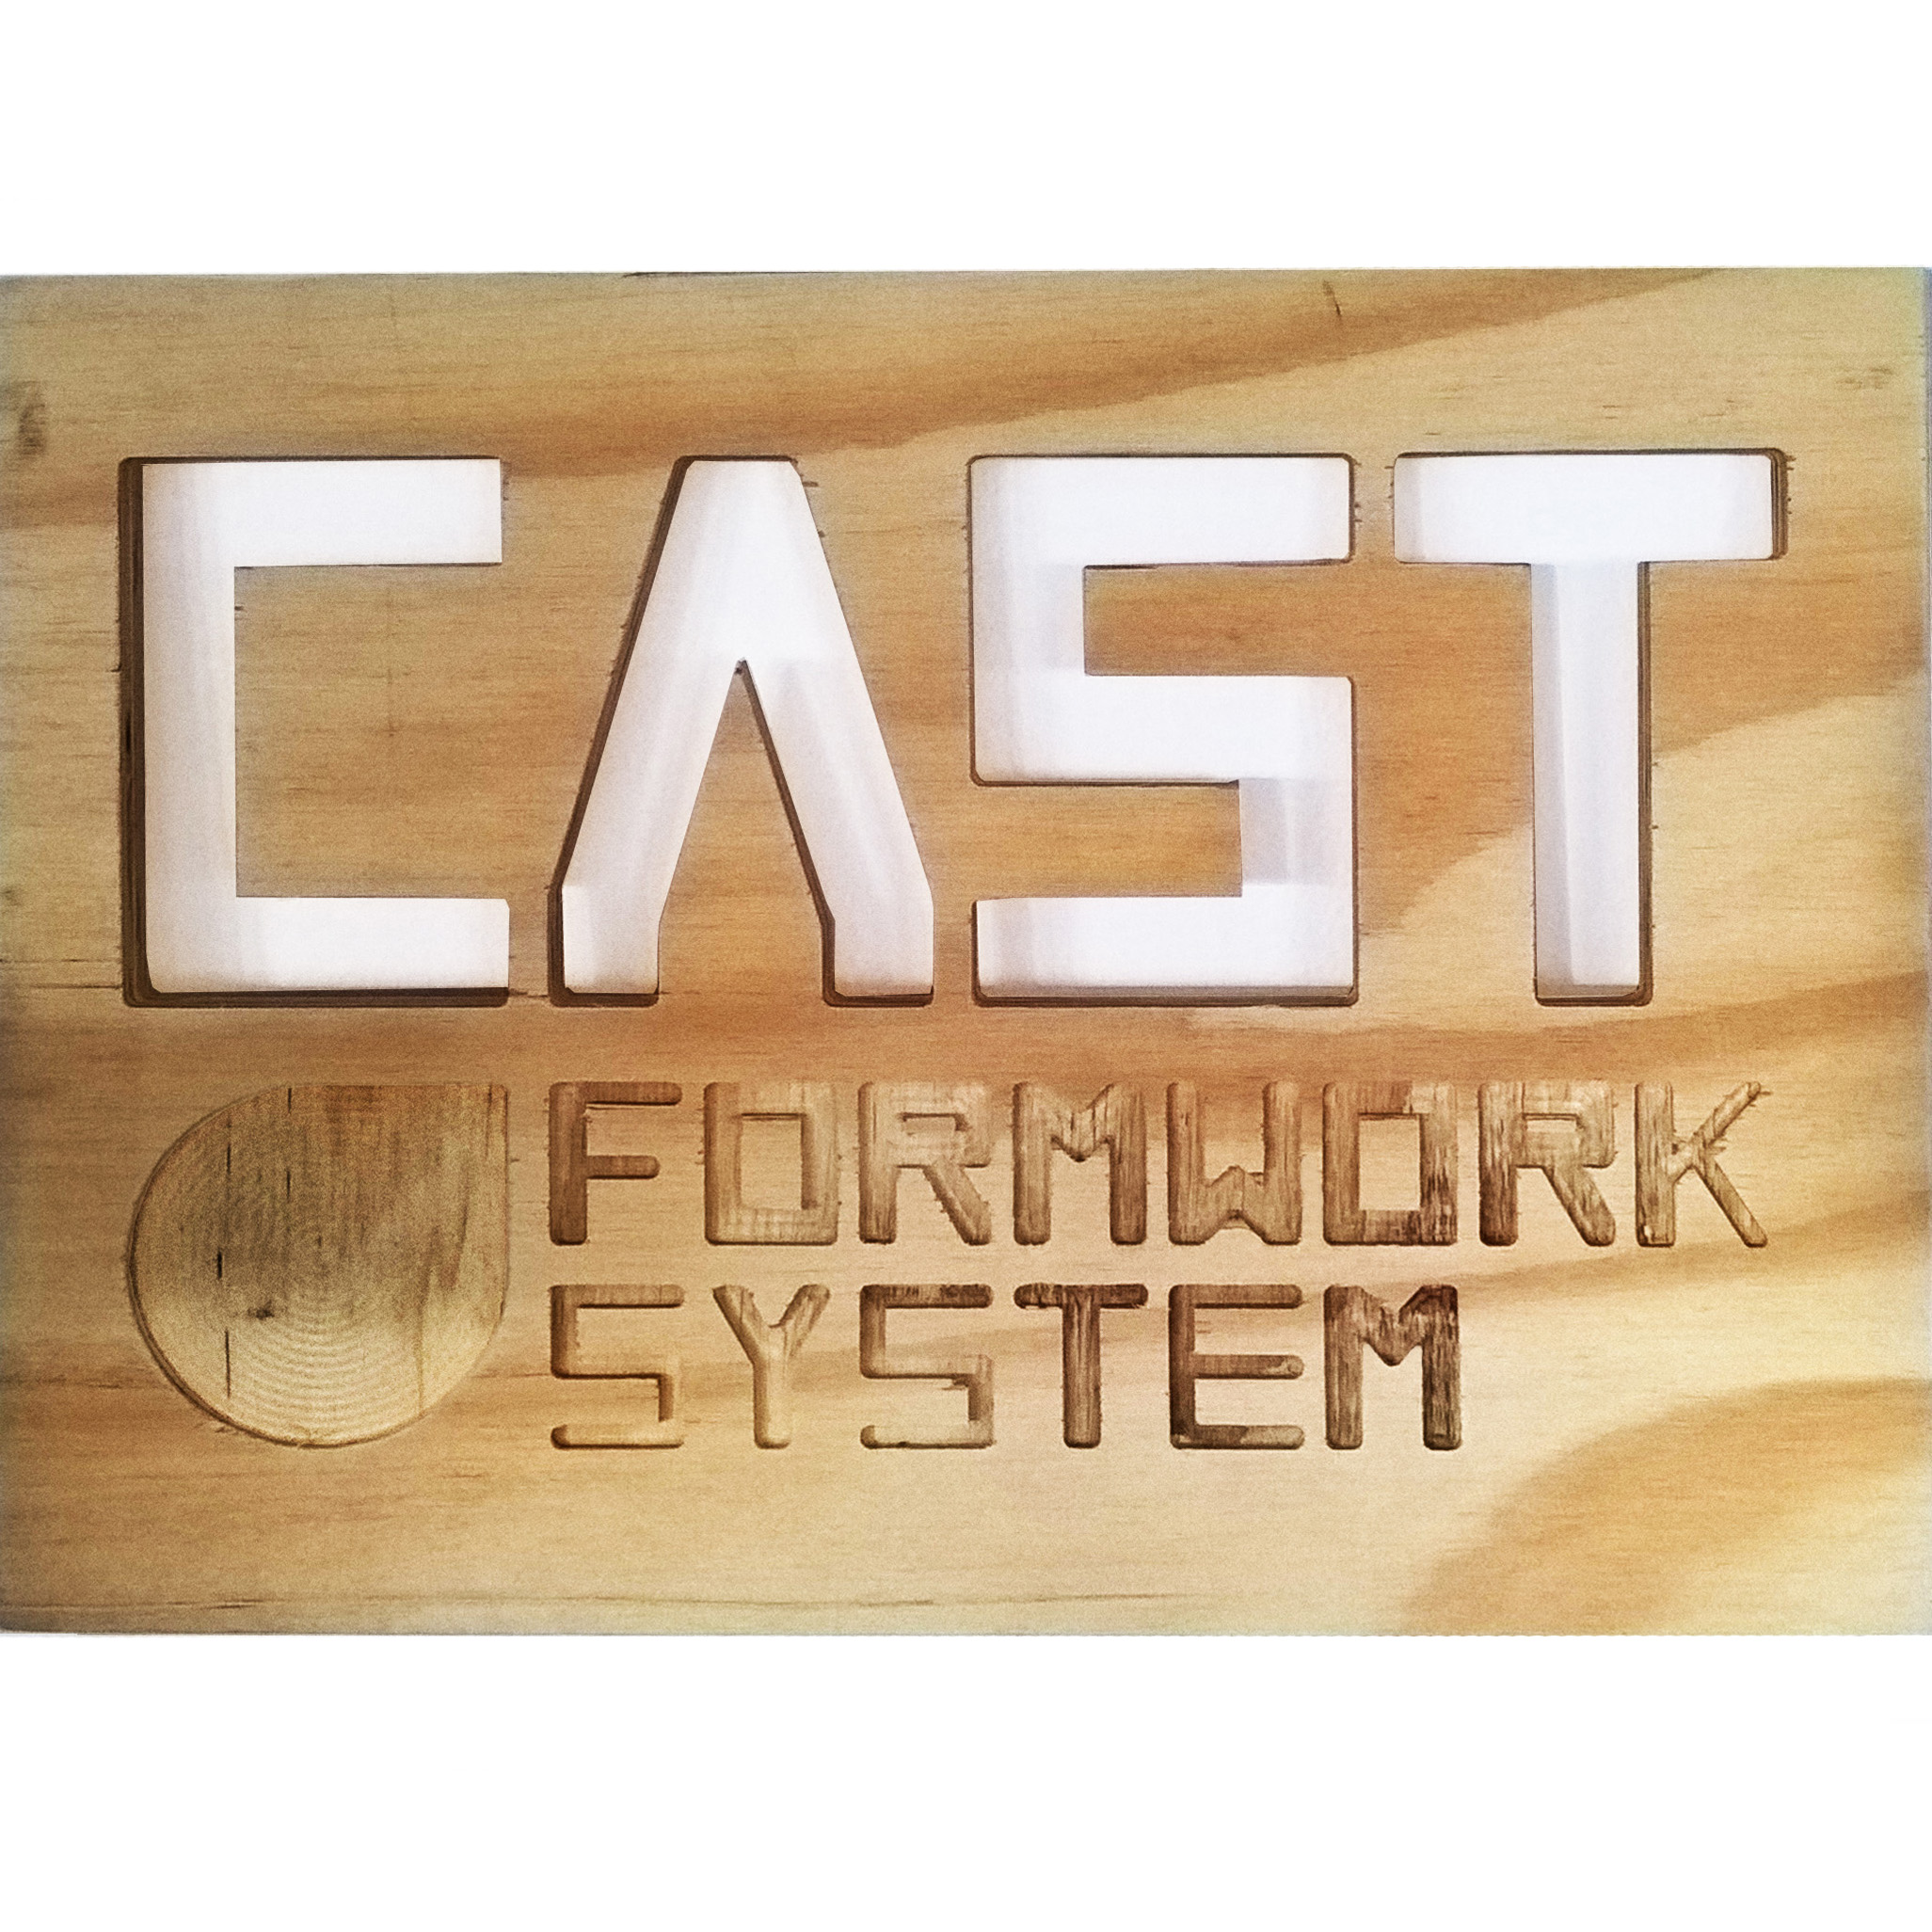 TD-Hybrids changes name to CAST Formwork System